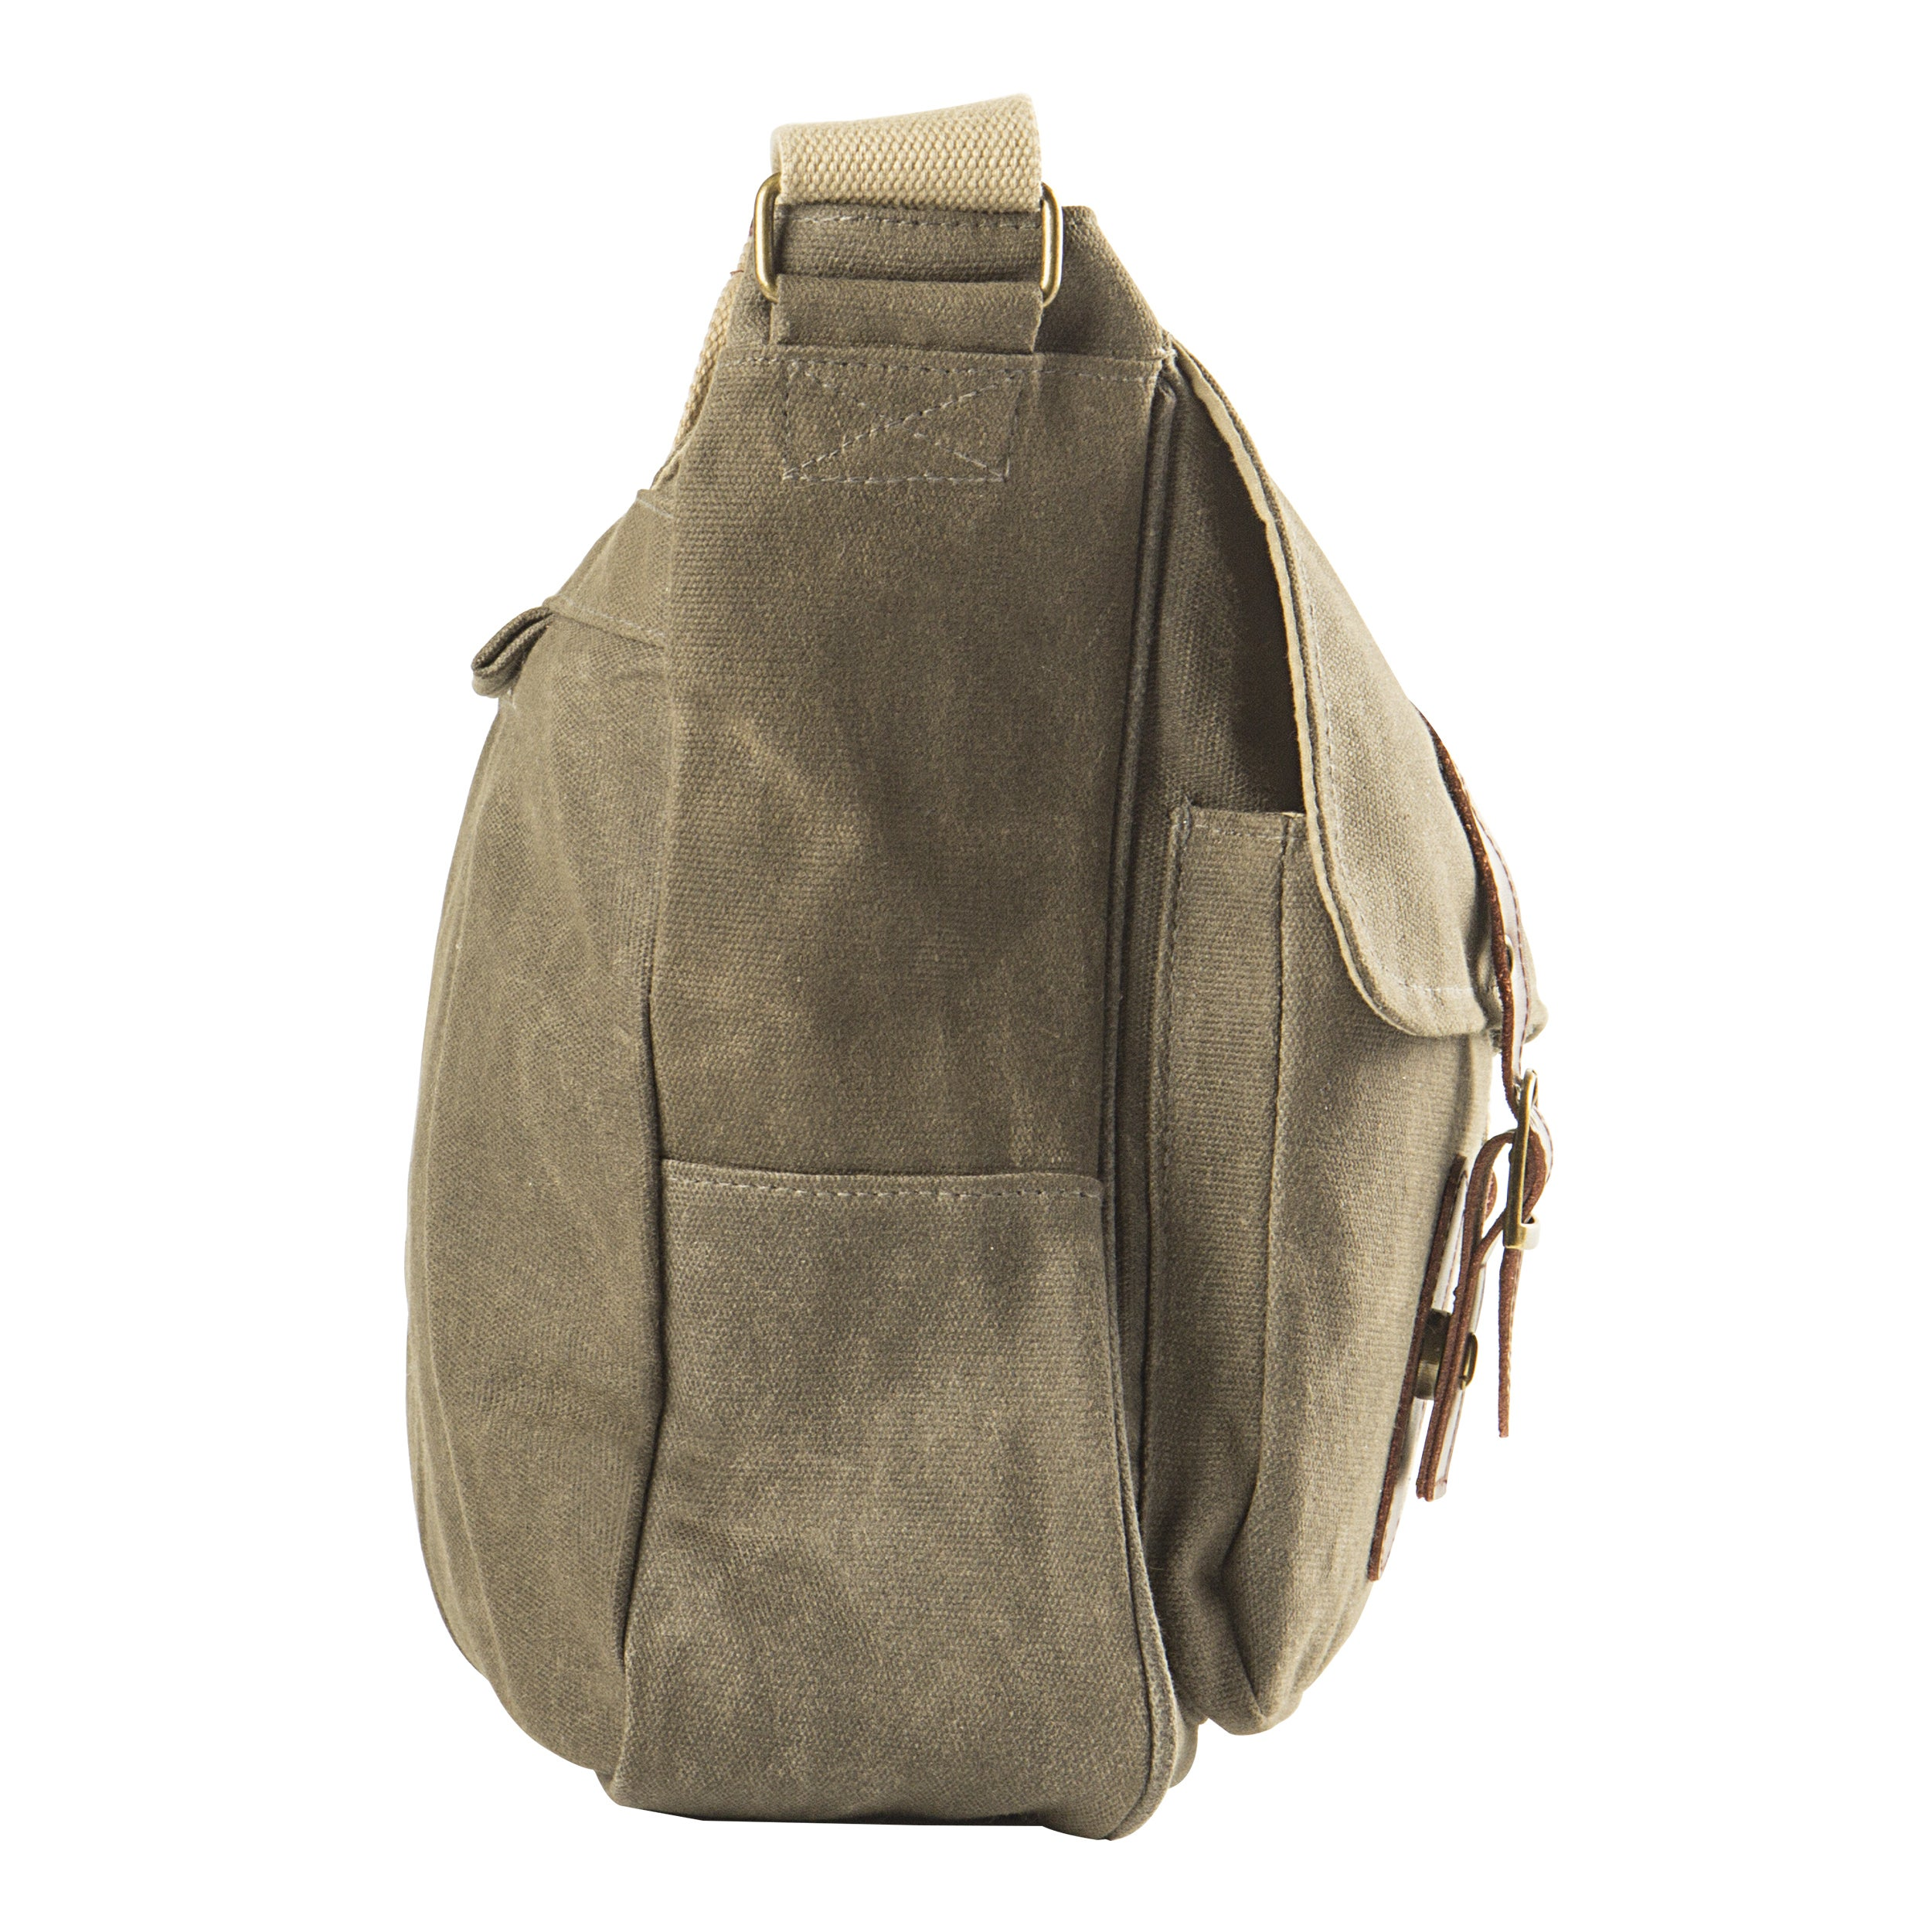 Shop Personalized Men s Olive Green Waxed Canvas and Leather Messenger Bag  - Free Shipping Today - Overstock - 16934845 ba2f8103dcd06